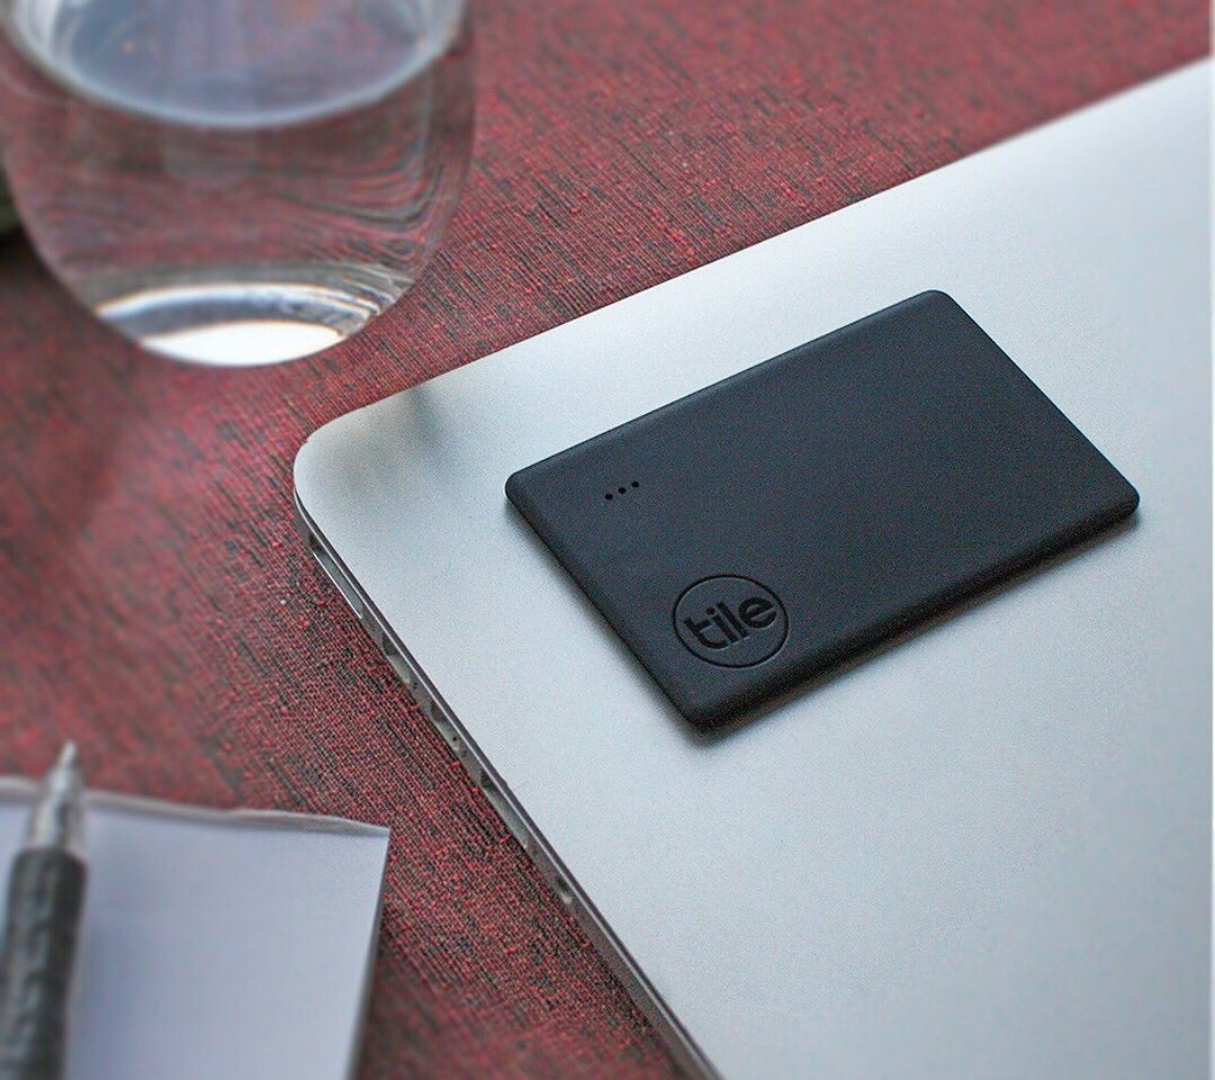 Tile Slim will find your laptop